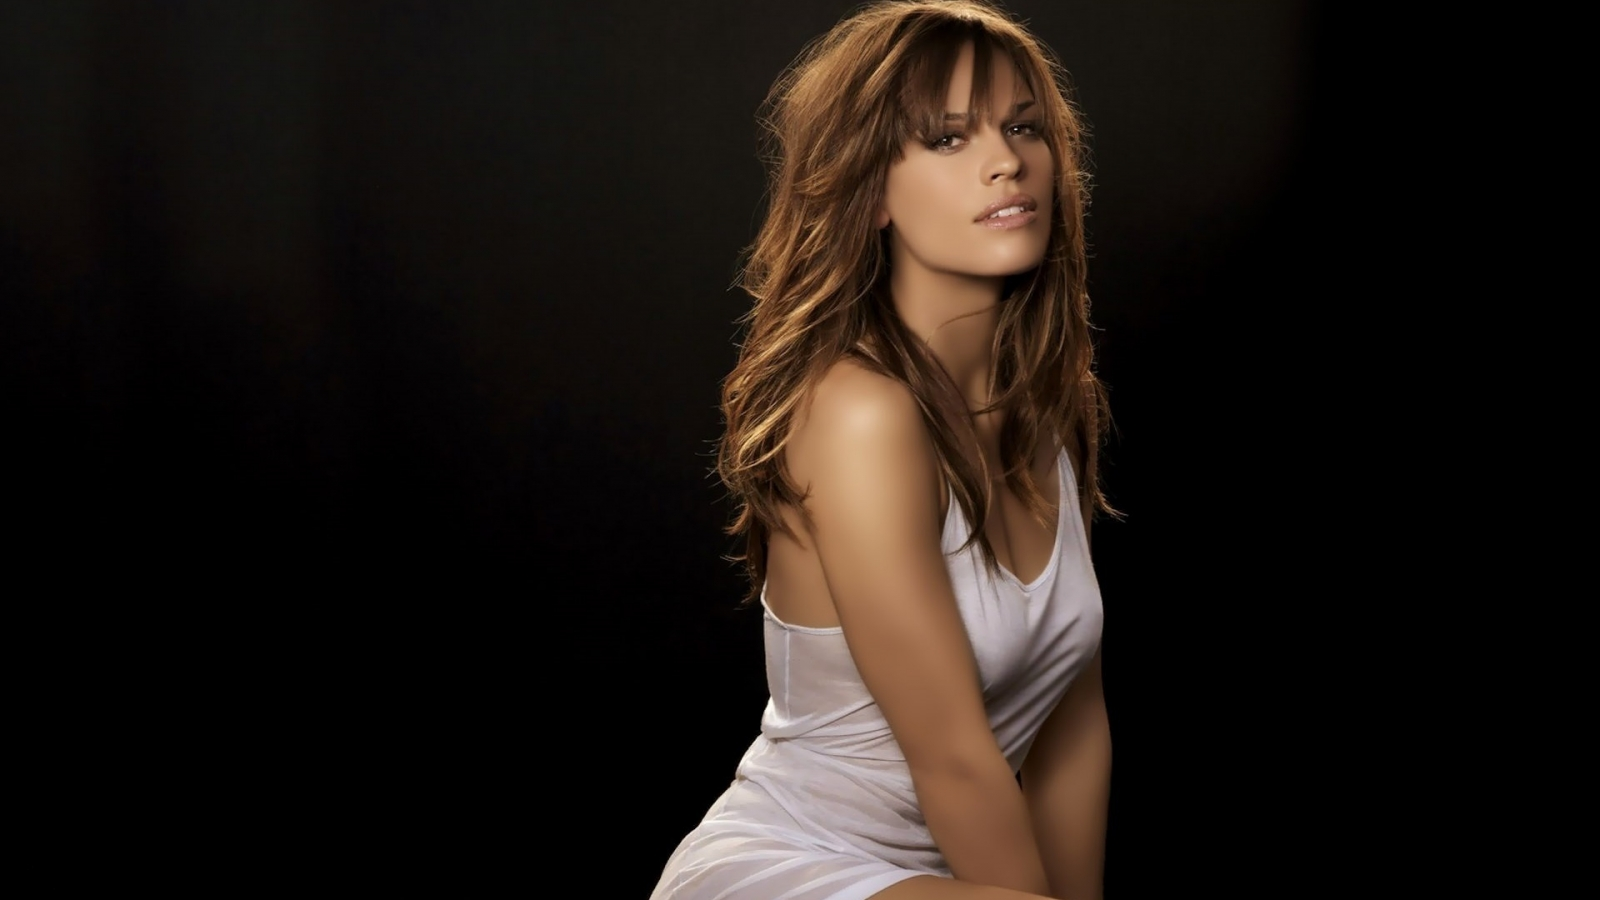 Splendid Hilary Swank for 1600 x 900 HDTV resolution